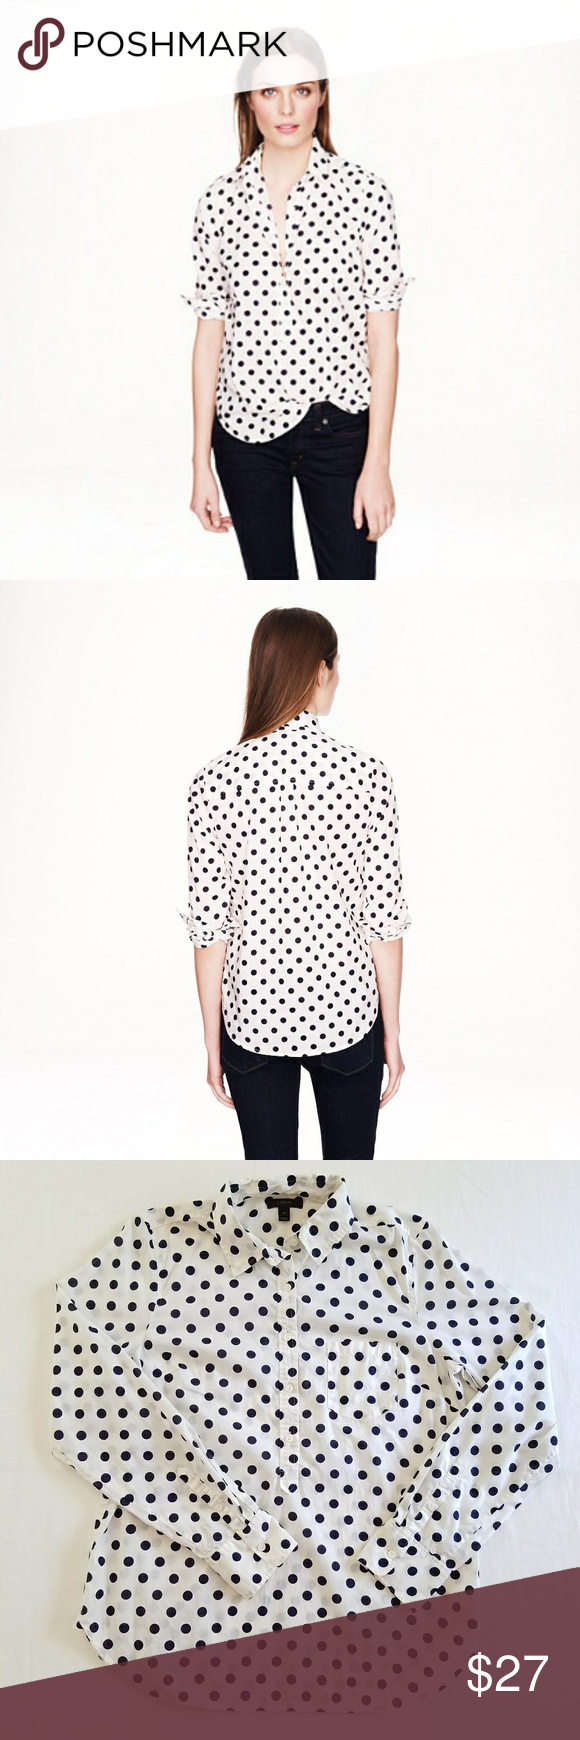 J. Crew polka-dot popover shirt J. Crew polka-dot popover in white with large navy polka dots. Size 8.  100% lightweight cotton.  Front button placket.  Pocket on left breast.  Bust is 20 inches and length from shoulder to hem is 27.5 inches.  No stains, holes, or snags. J. Crew Tops Button Down Shirts